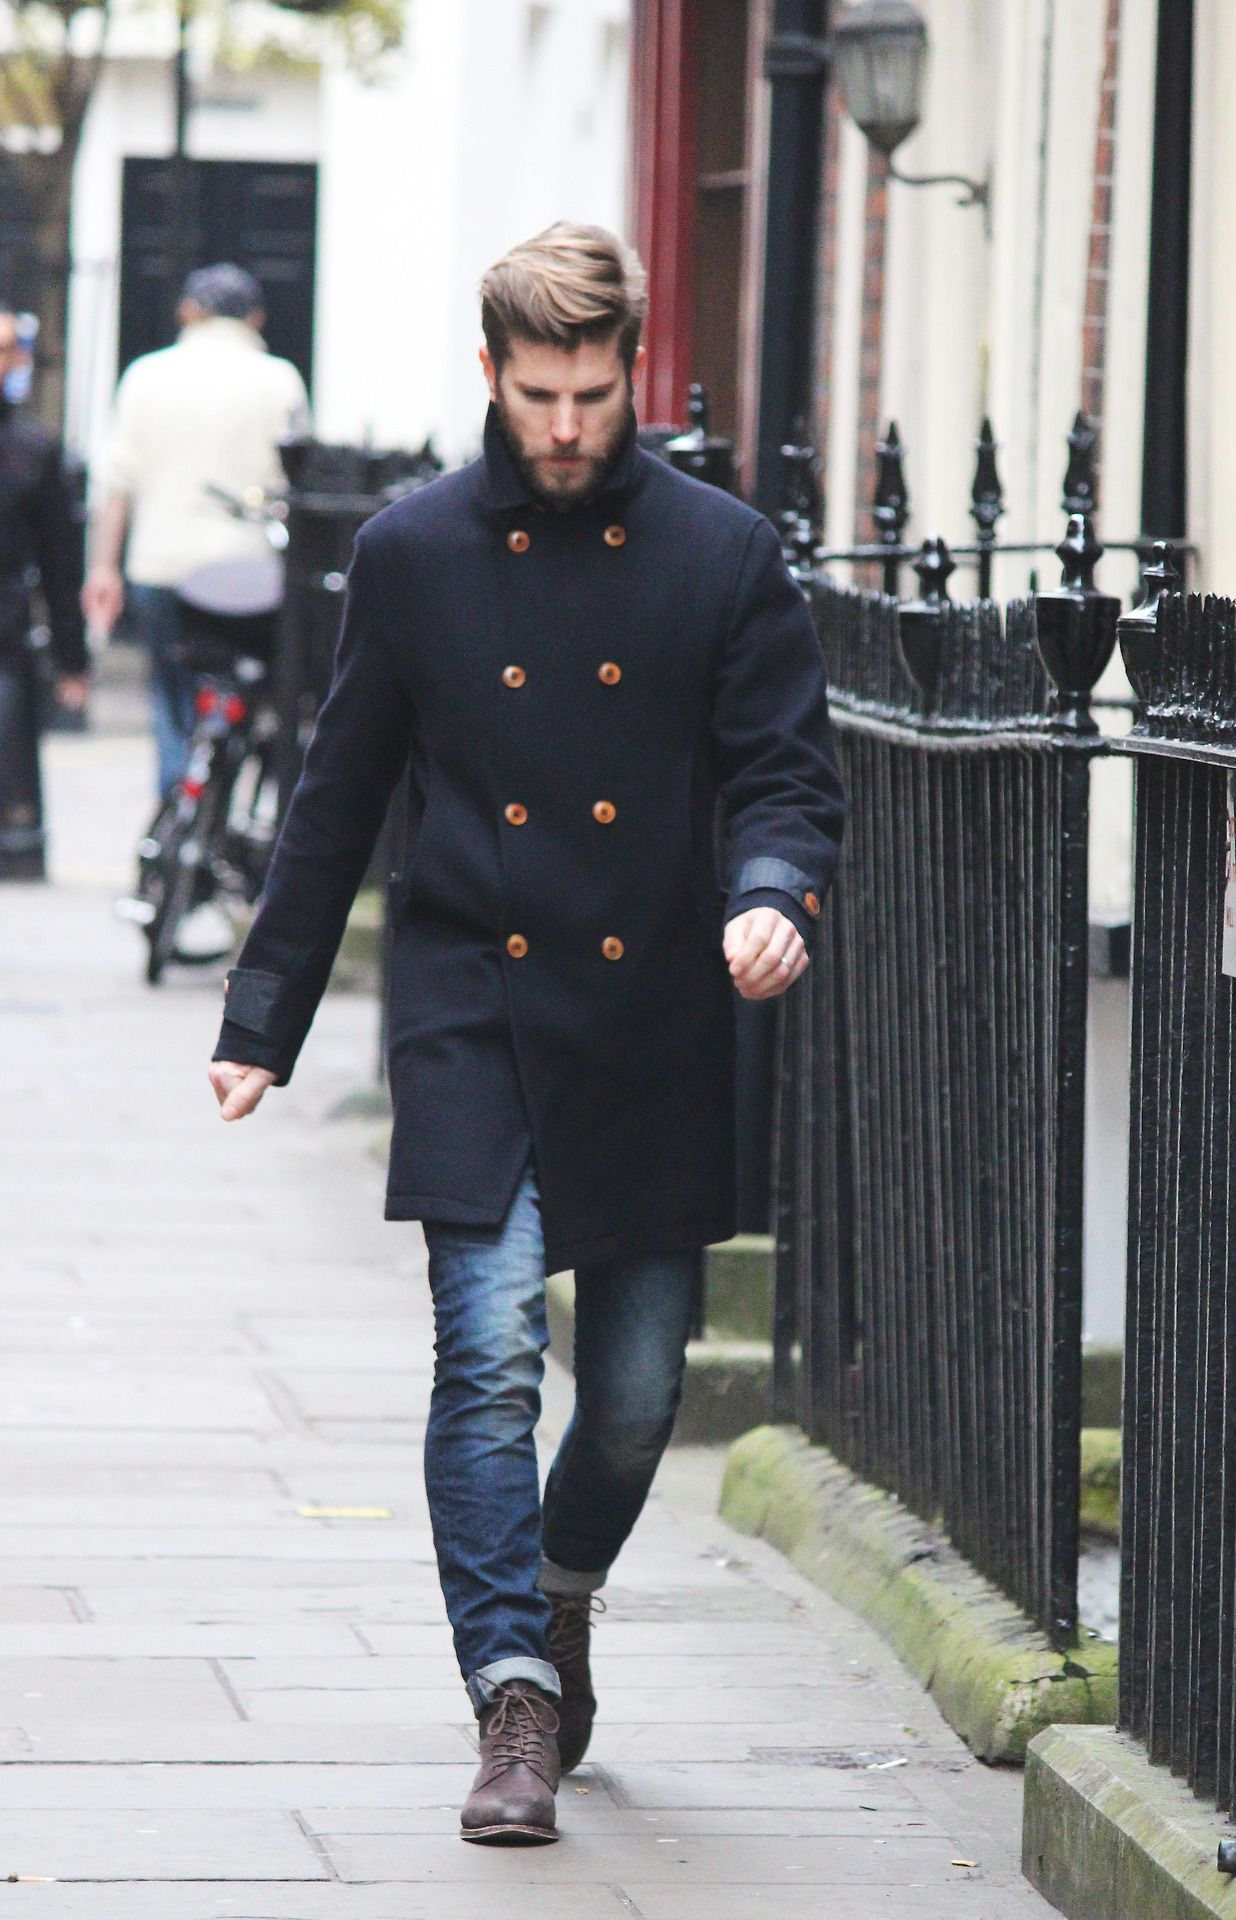 Pin by Lookastic on Overcoats in 2019 | Winter outfits men